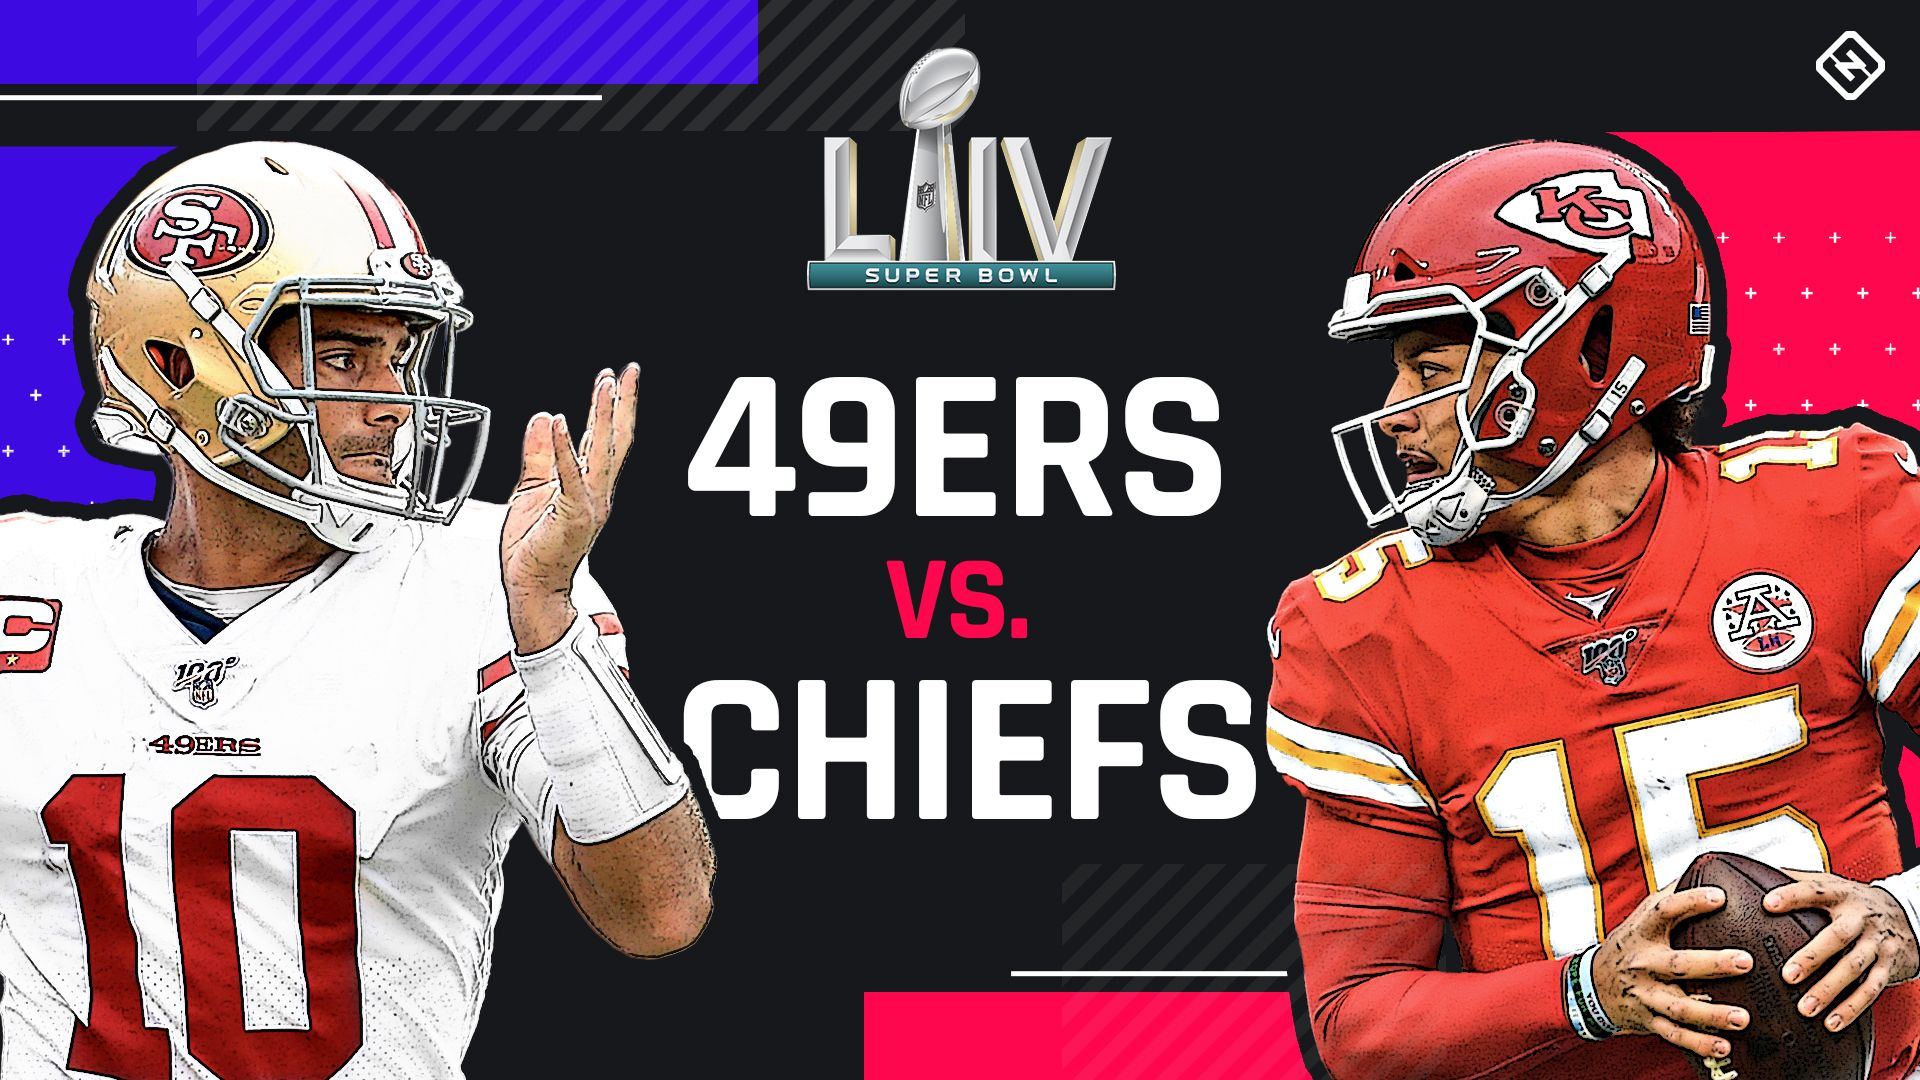 Super Bowl 2020 Odds Line 49ers Vs Chiefs Picks Predictions From Sn Experts Sporting News In 2020 Super Bowl Nfl 49ers Vs Chiefs Super Bowl